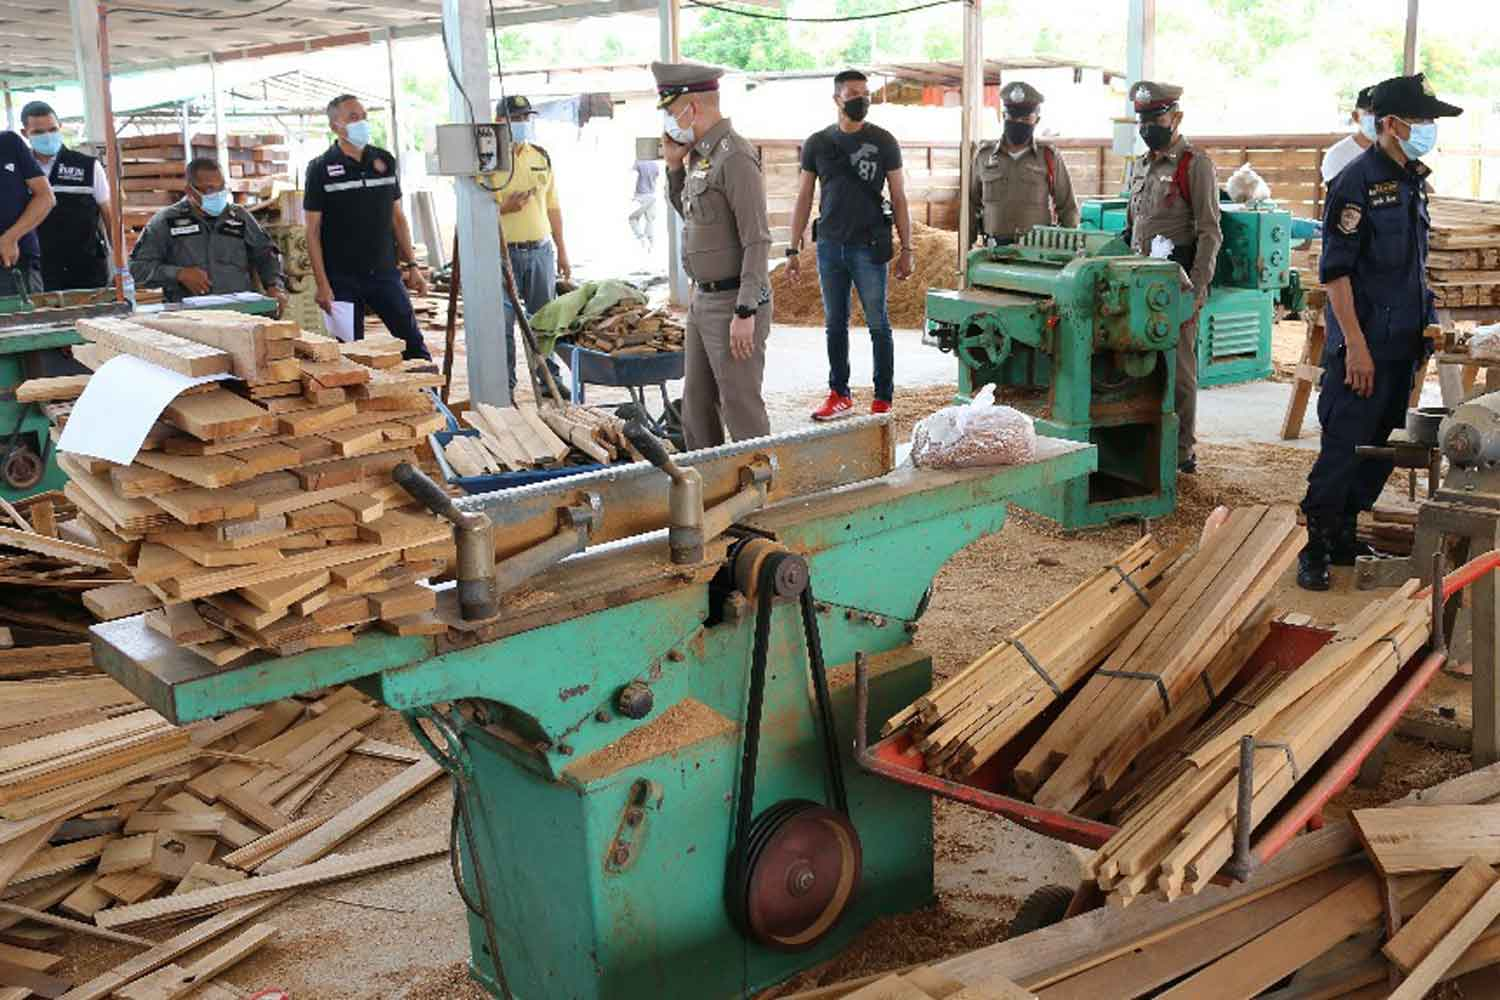 Police and officials from the Natural Resources and Environment Ministry search the Taweesap Kha Mai lumber plant on the outskirts of Kanchanaburi township on Monday. The owner and three workers were later arrested. (Photo: Piyarat Choncharoen)